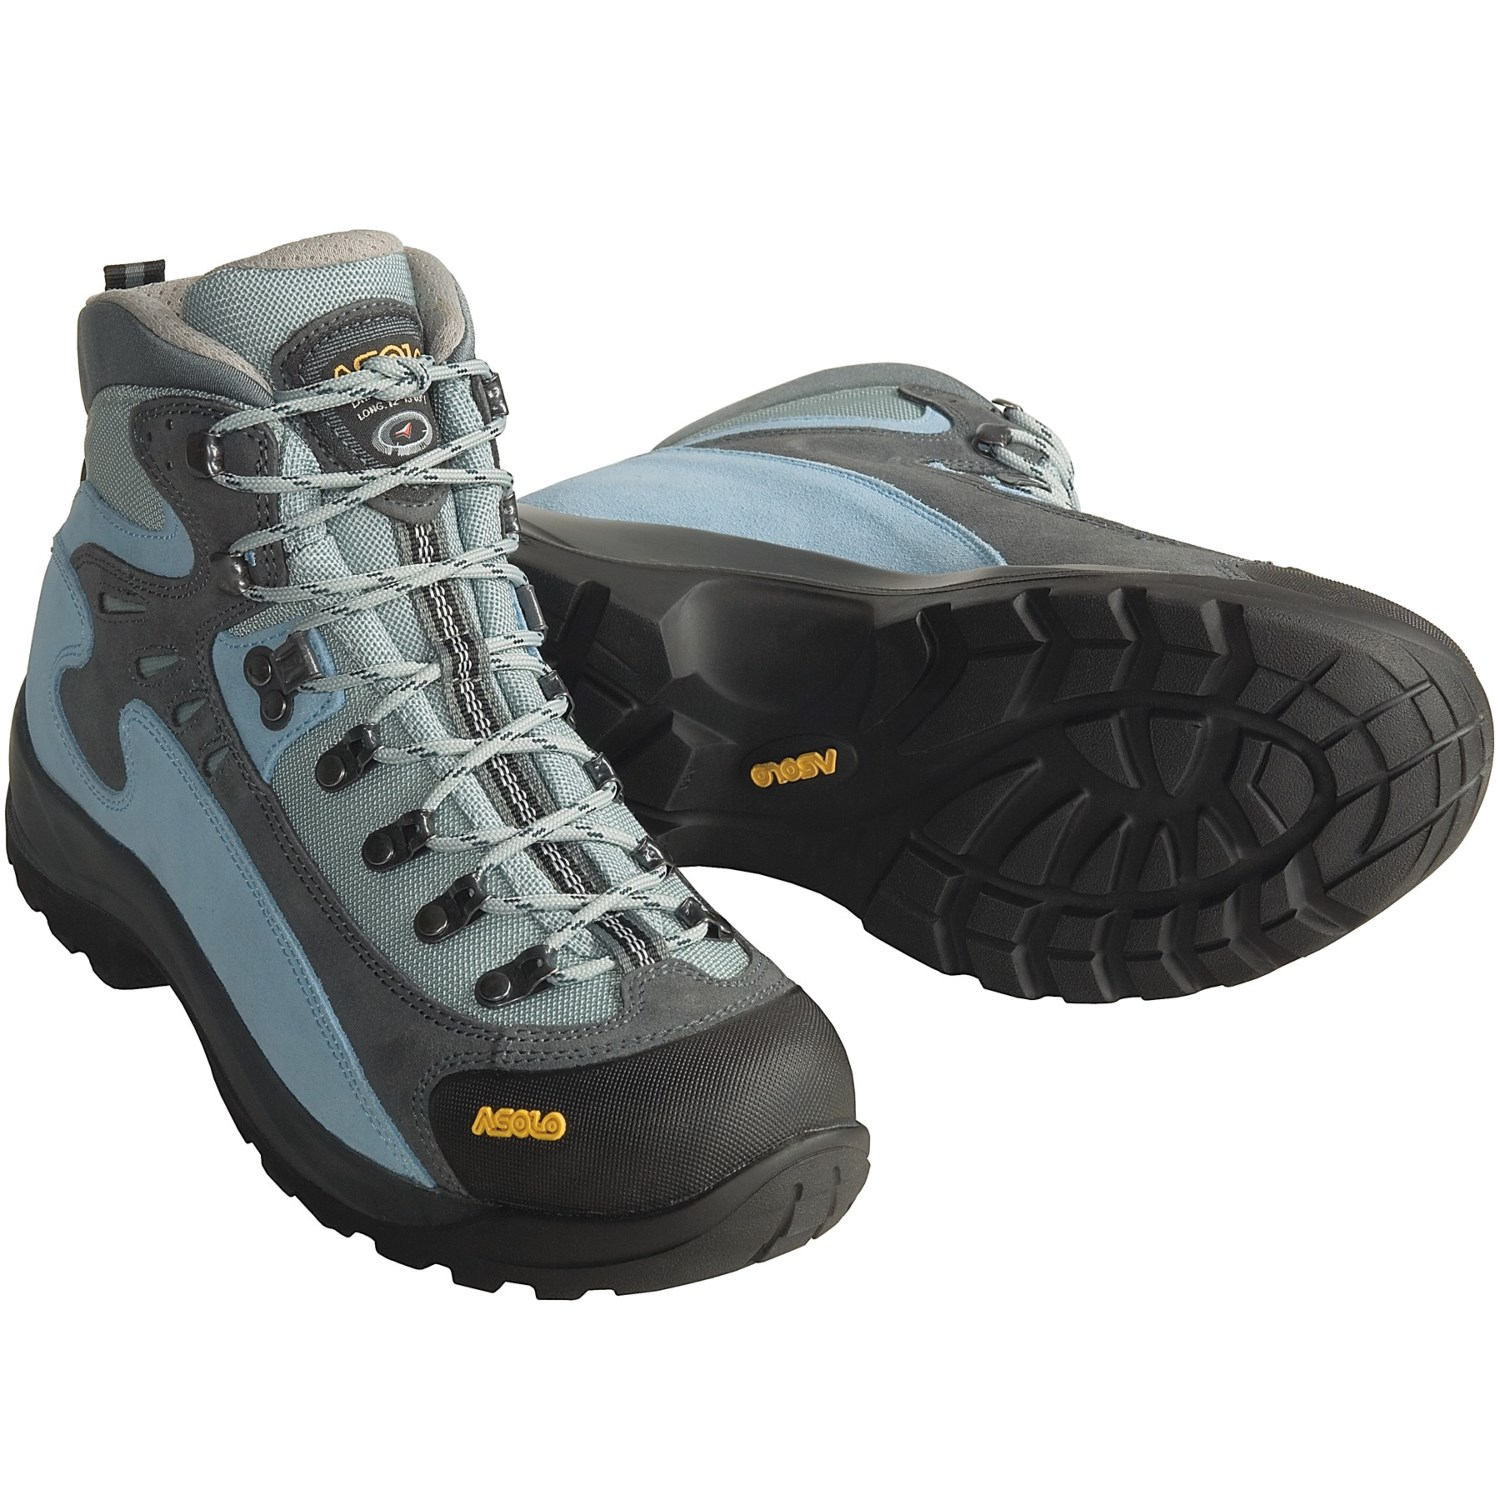 Asolo Fsn 85 Hiking Boots For Women 72555 Save 40